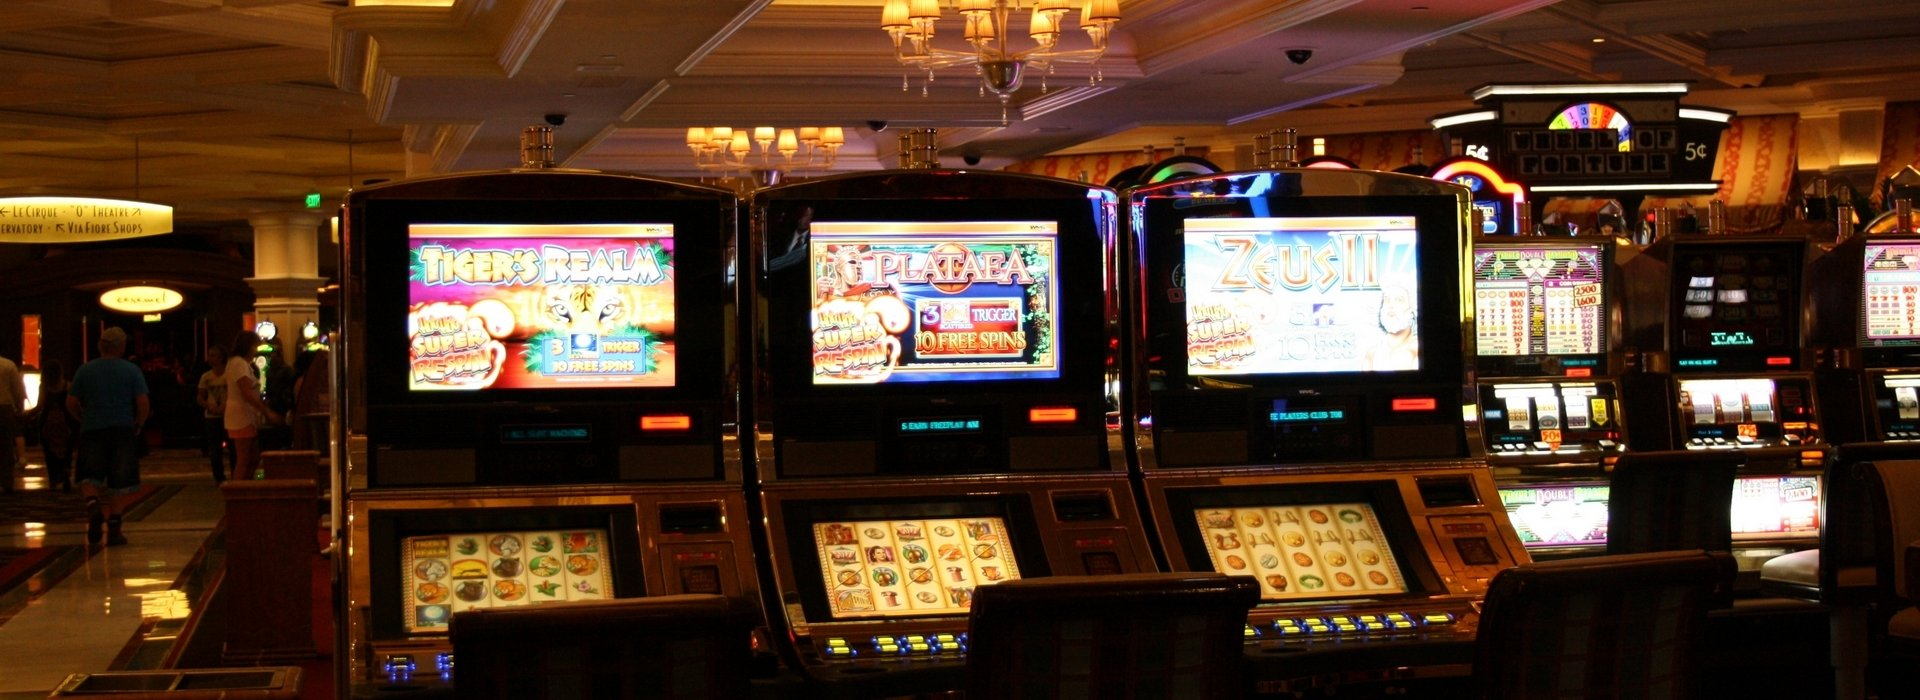 Electronic Casinos - Casinos